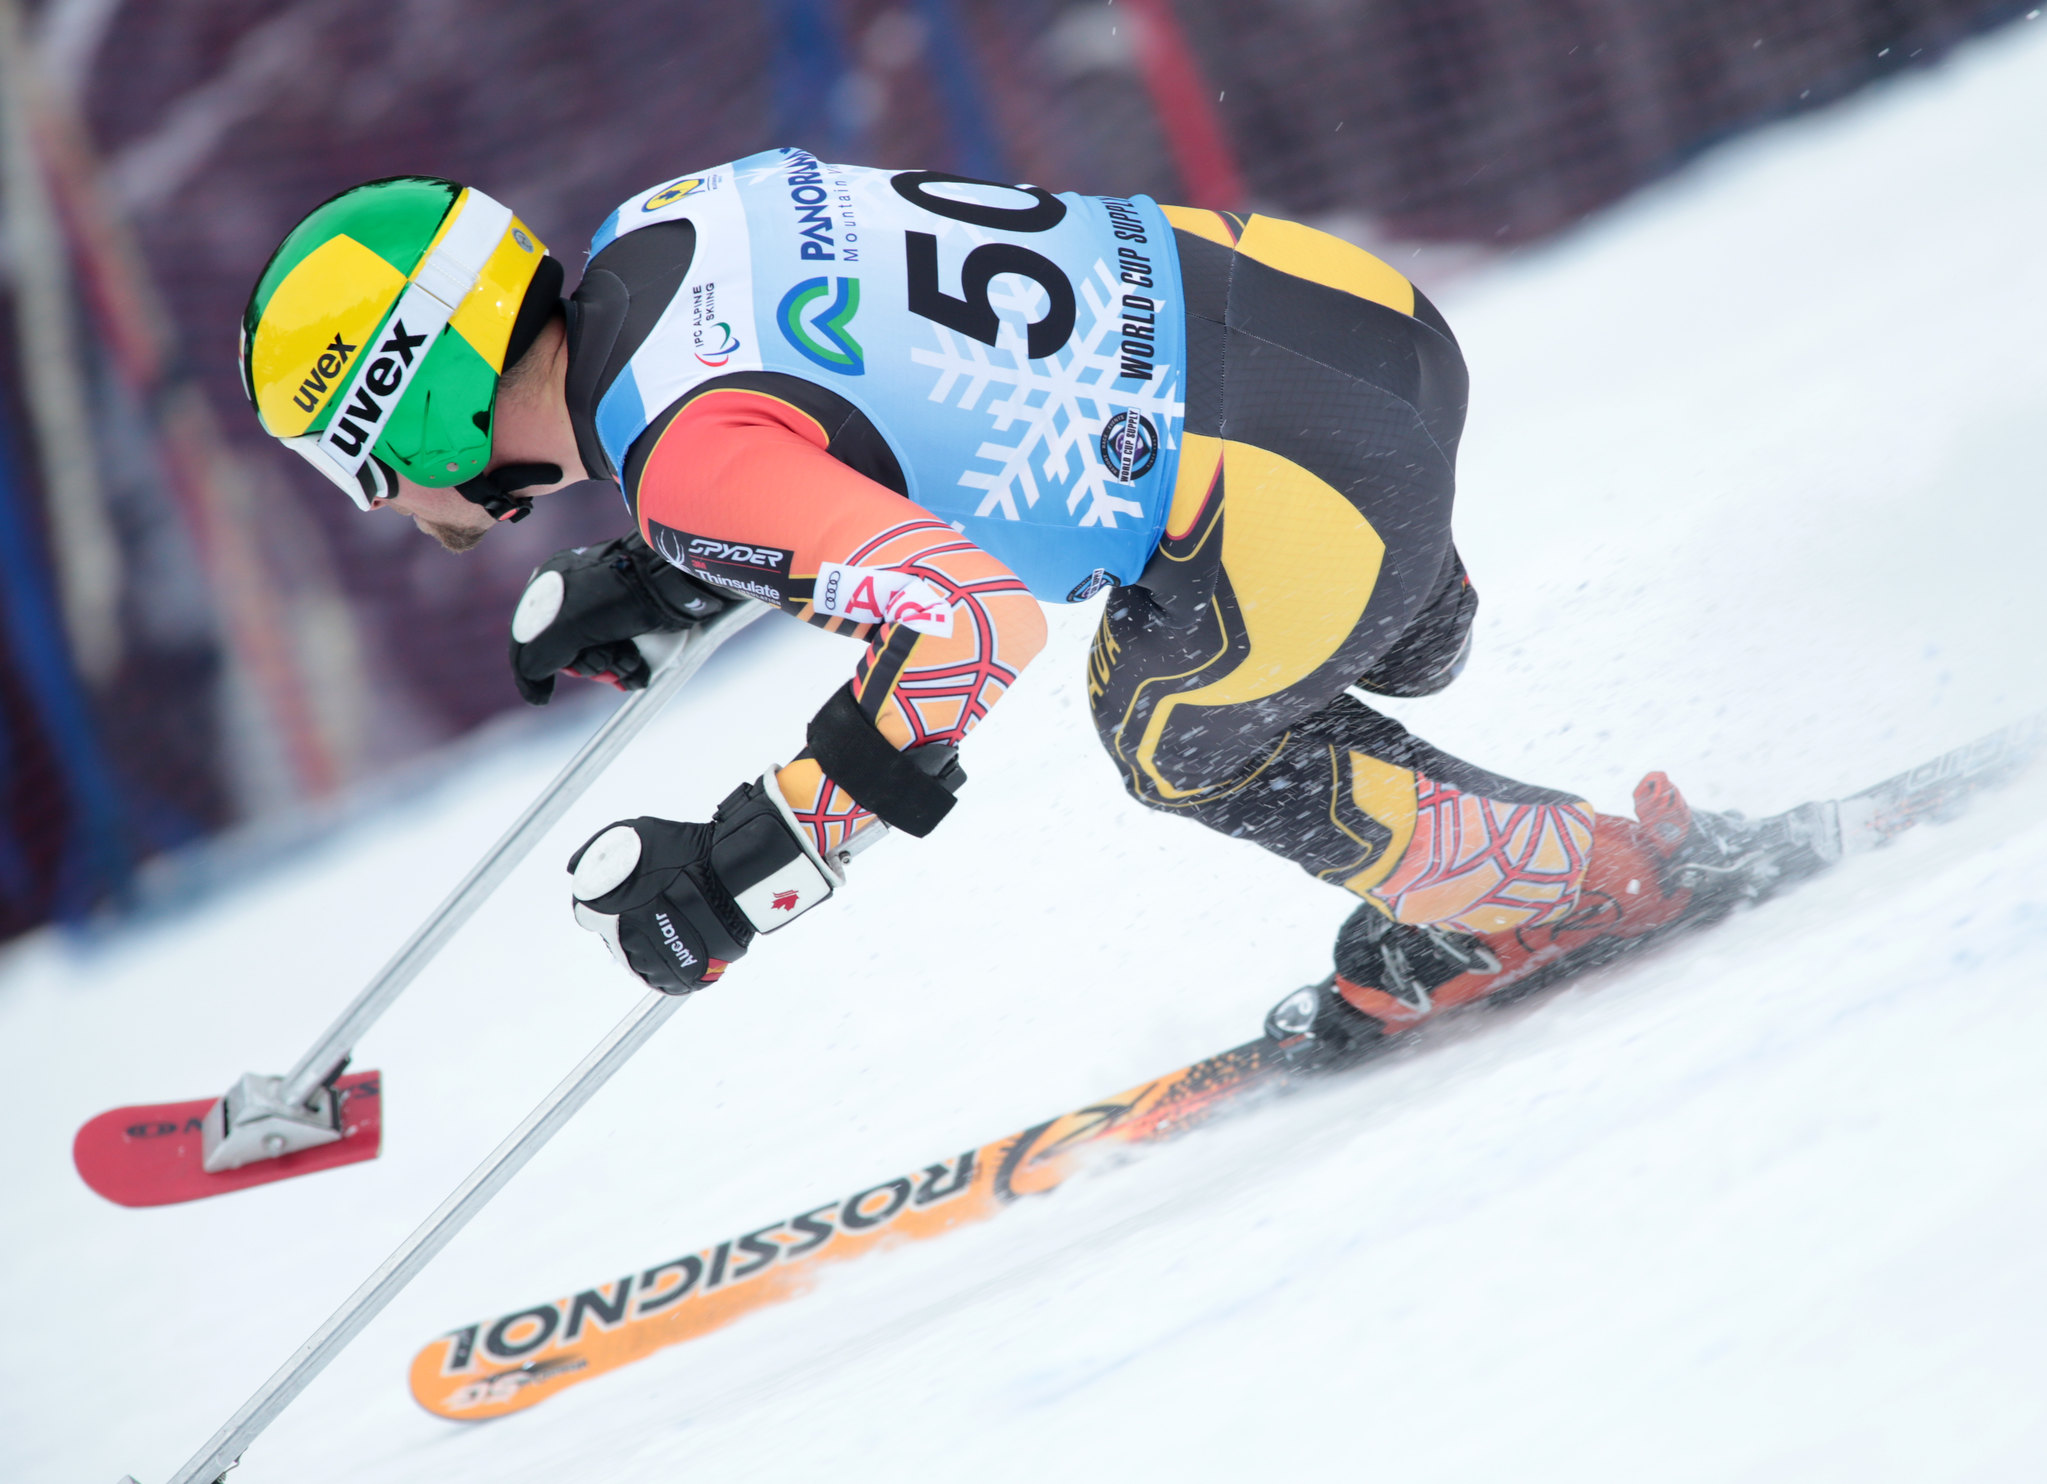 Matt Hallat in action during the Super-G in Panorama, CAN